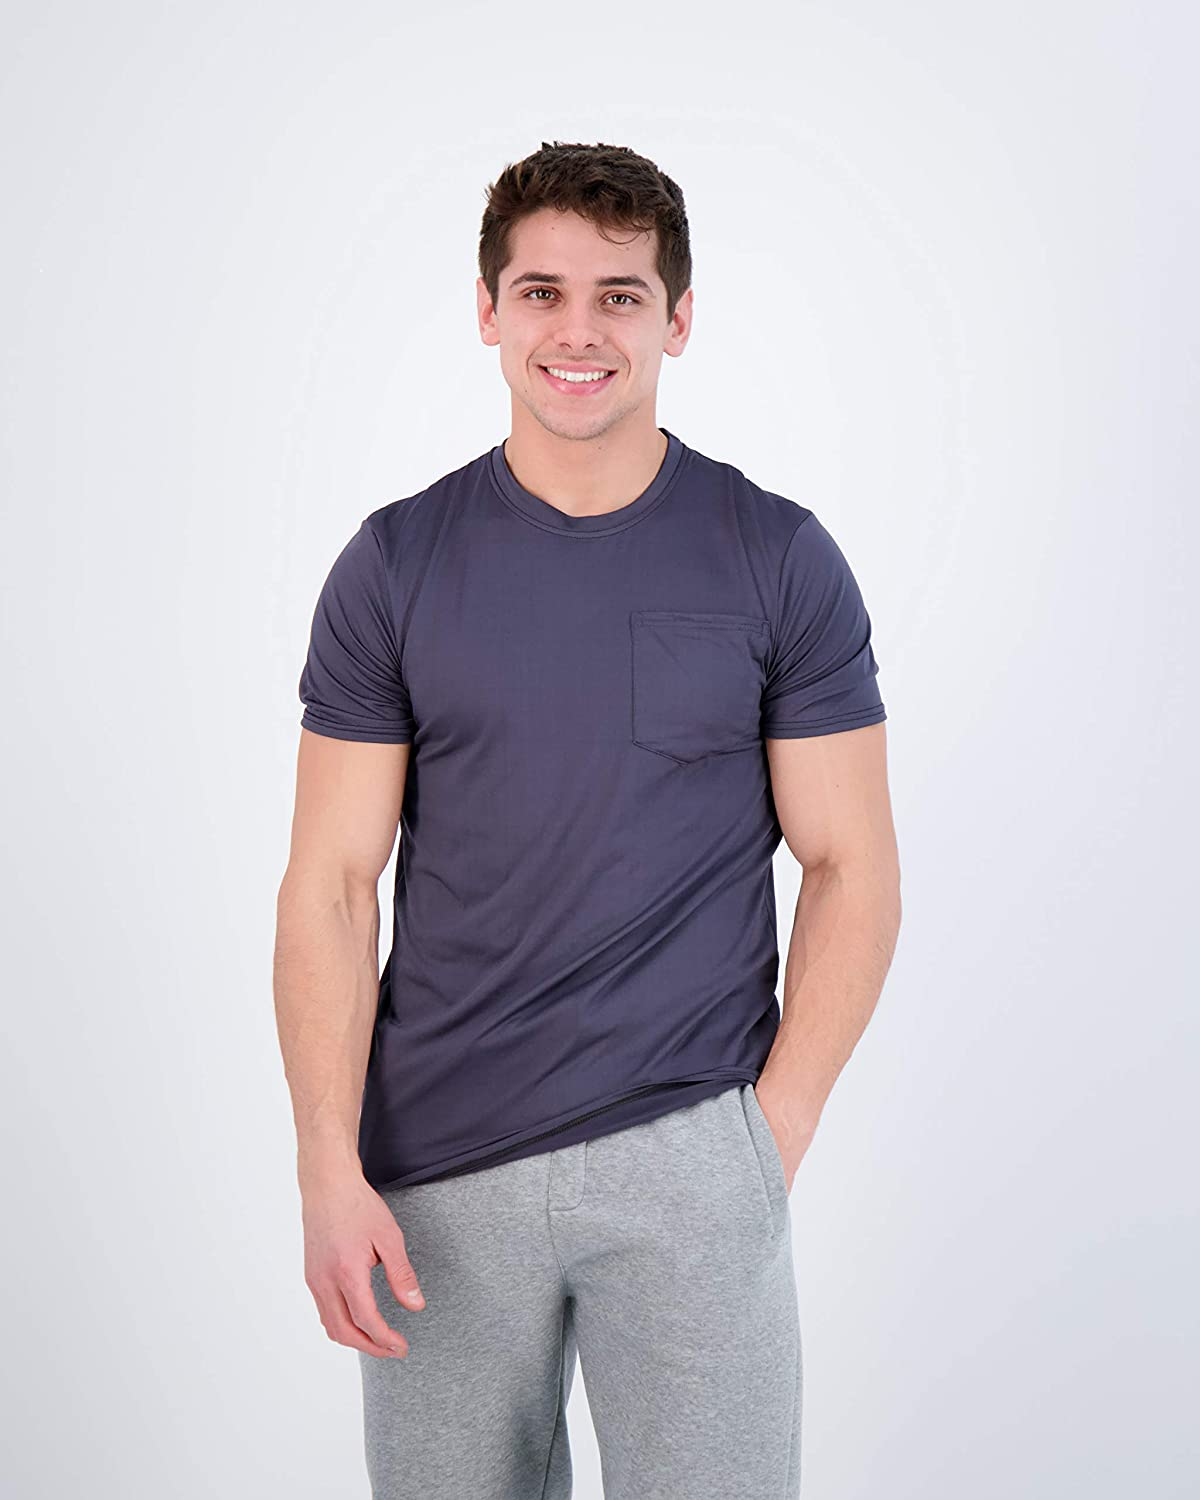 5-Pack: Mens Dry-Fit Moisture Wicking Active Athletic Performance Short Sleeve Crew T-Shirts with Pocket at  Men's Clothing store